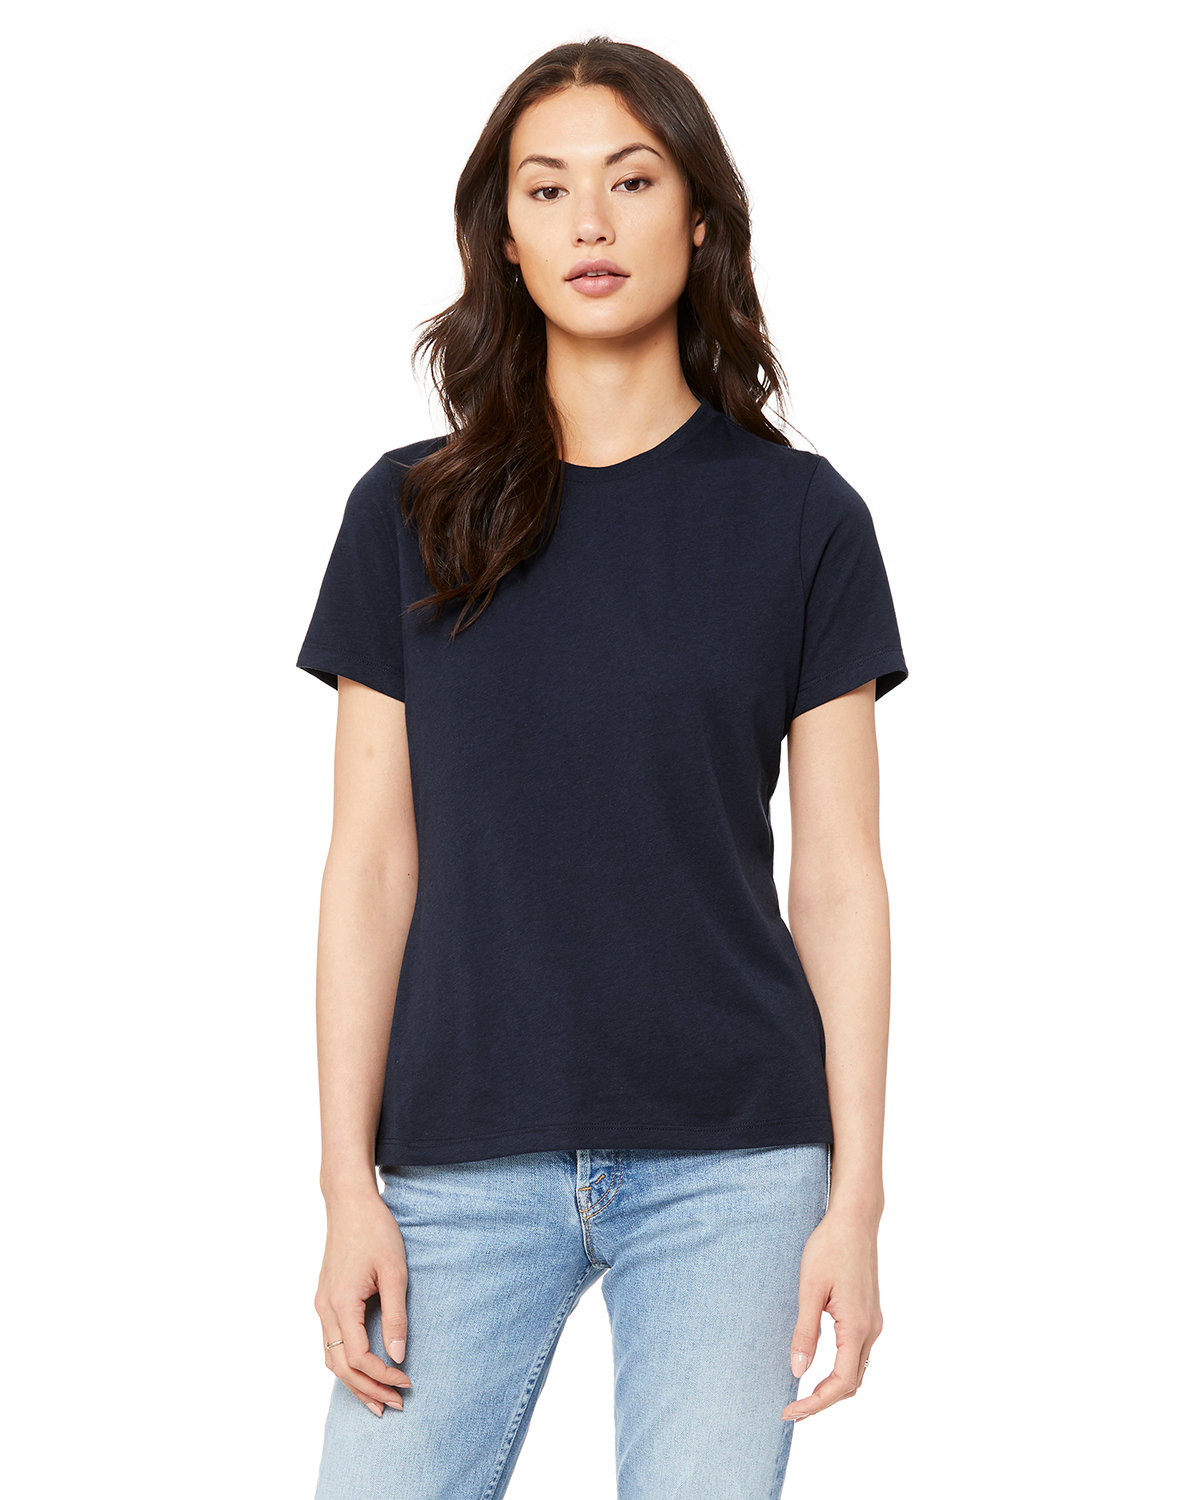 Bella + Canvas Ladies' Relaxed Triblend T-Shirt SOLID NVY TRBLND